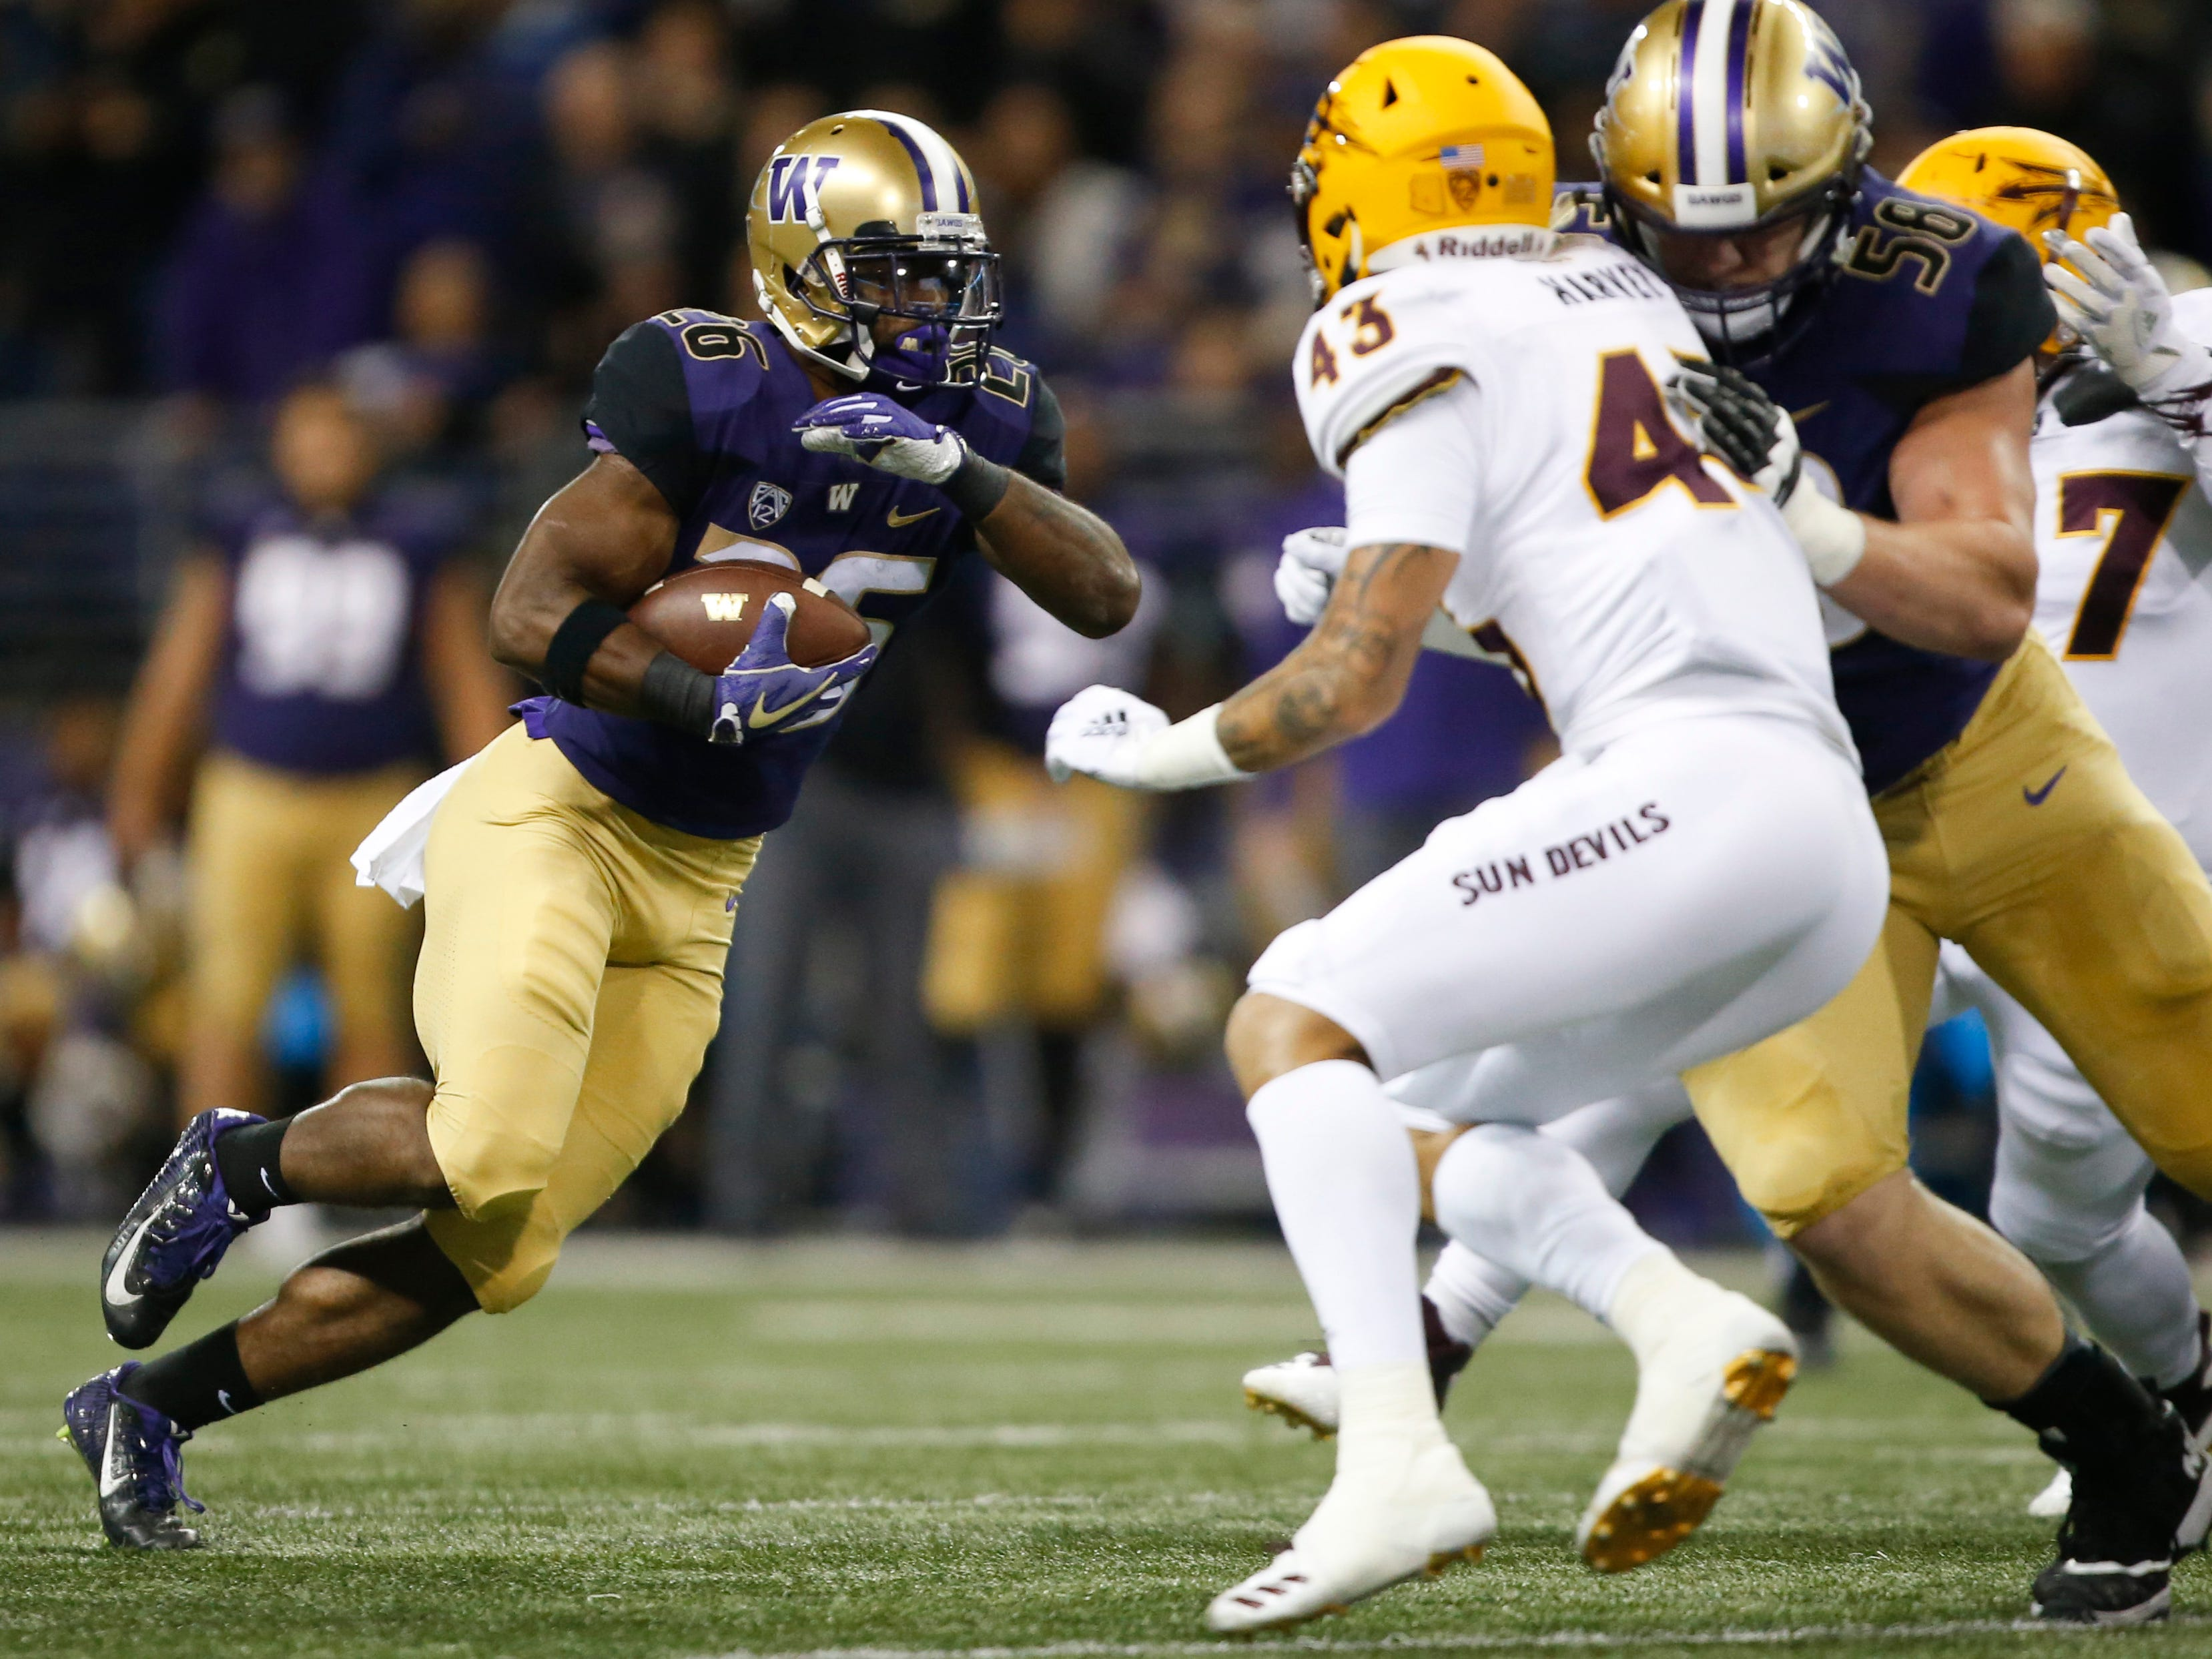 Sep 22, 2018; Seattle, WA, USA; Washington Huskies running back Salvon Ahmed (26) rushes the ball against the Arizona State Sun Devils during the first quarter at Husky Stadium.